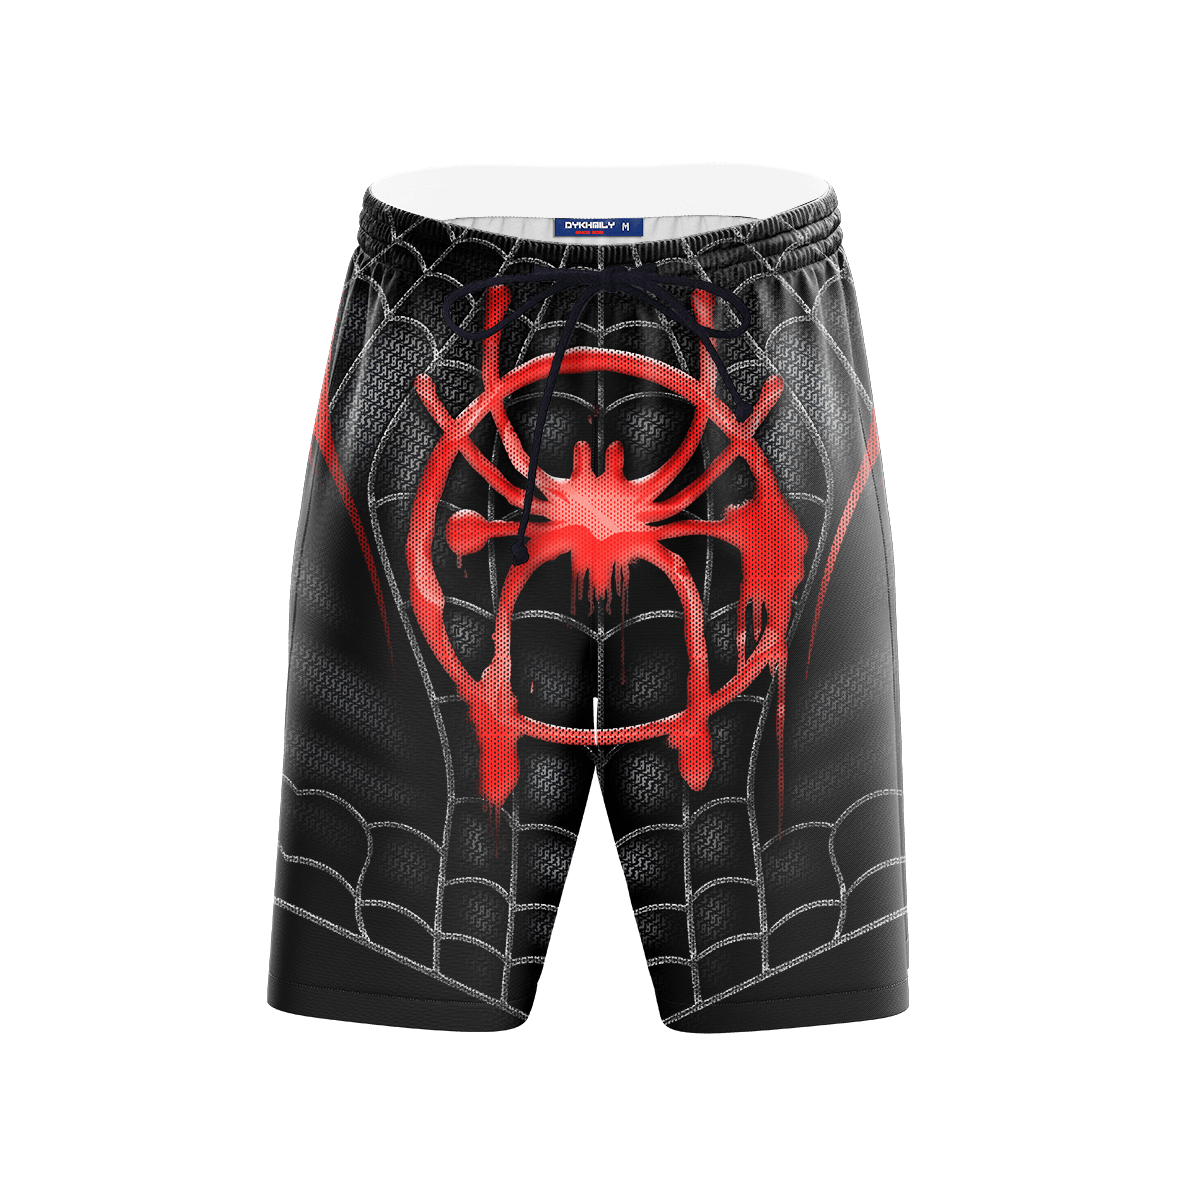 Into The Spider Verse Beach Shorts FDM3107 S Official Anime Swimsuit Merch